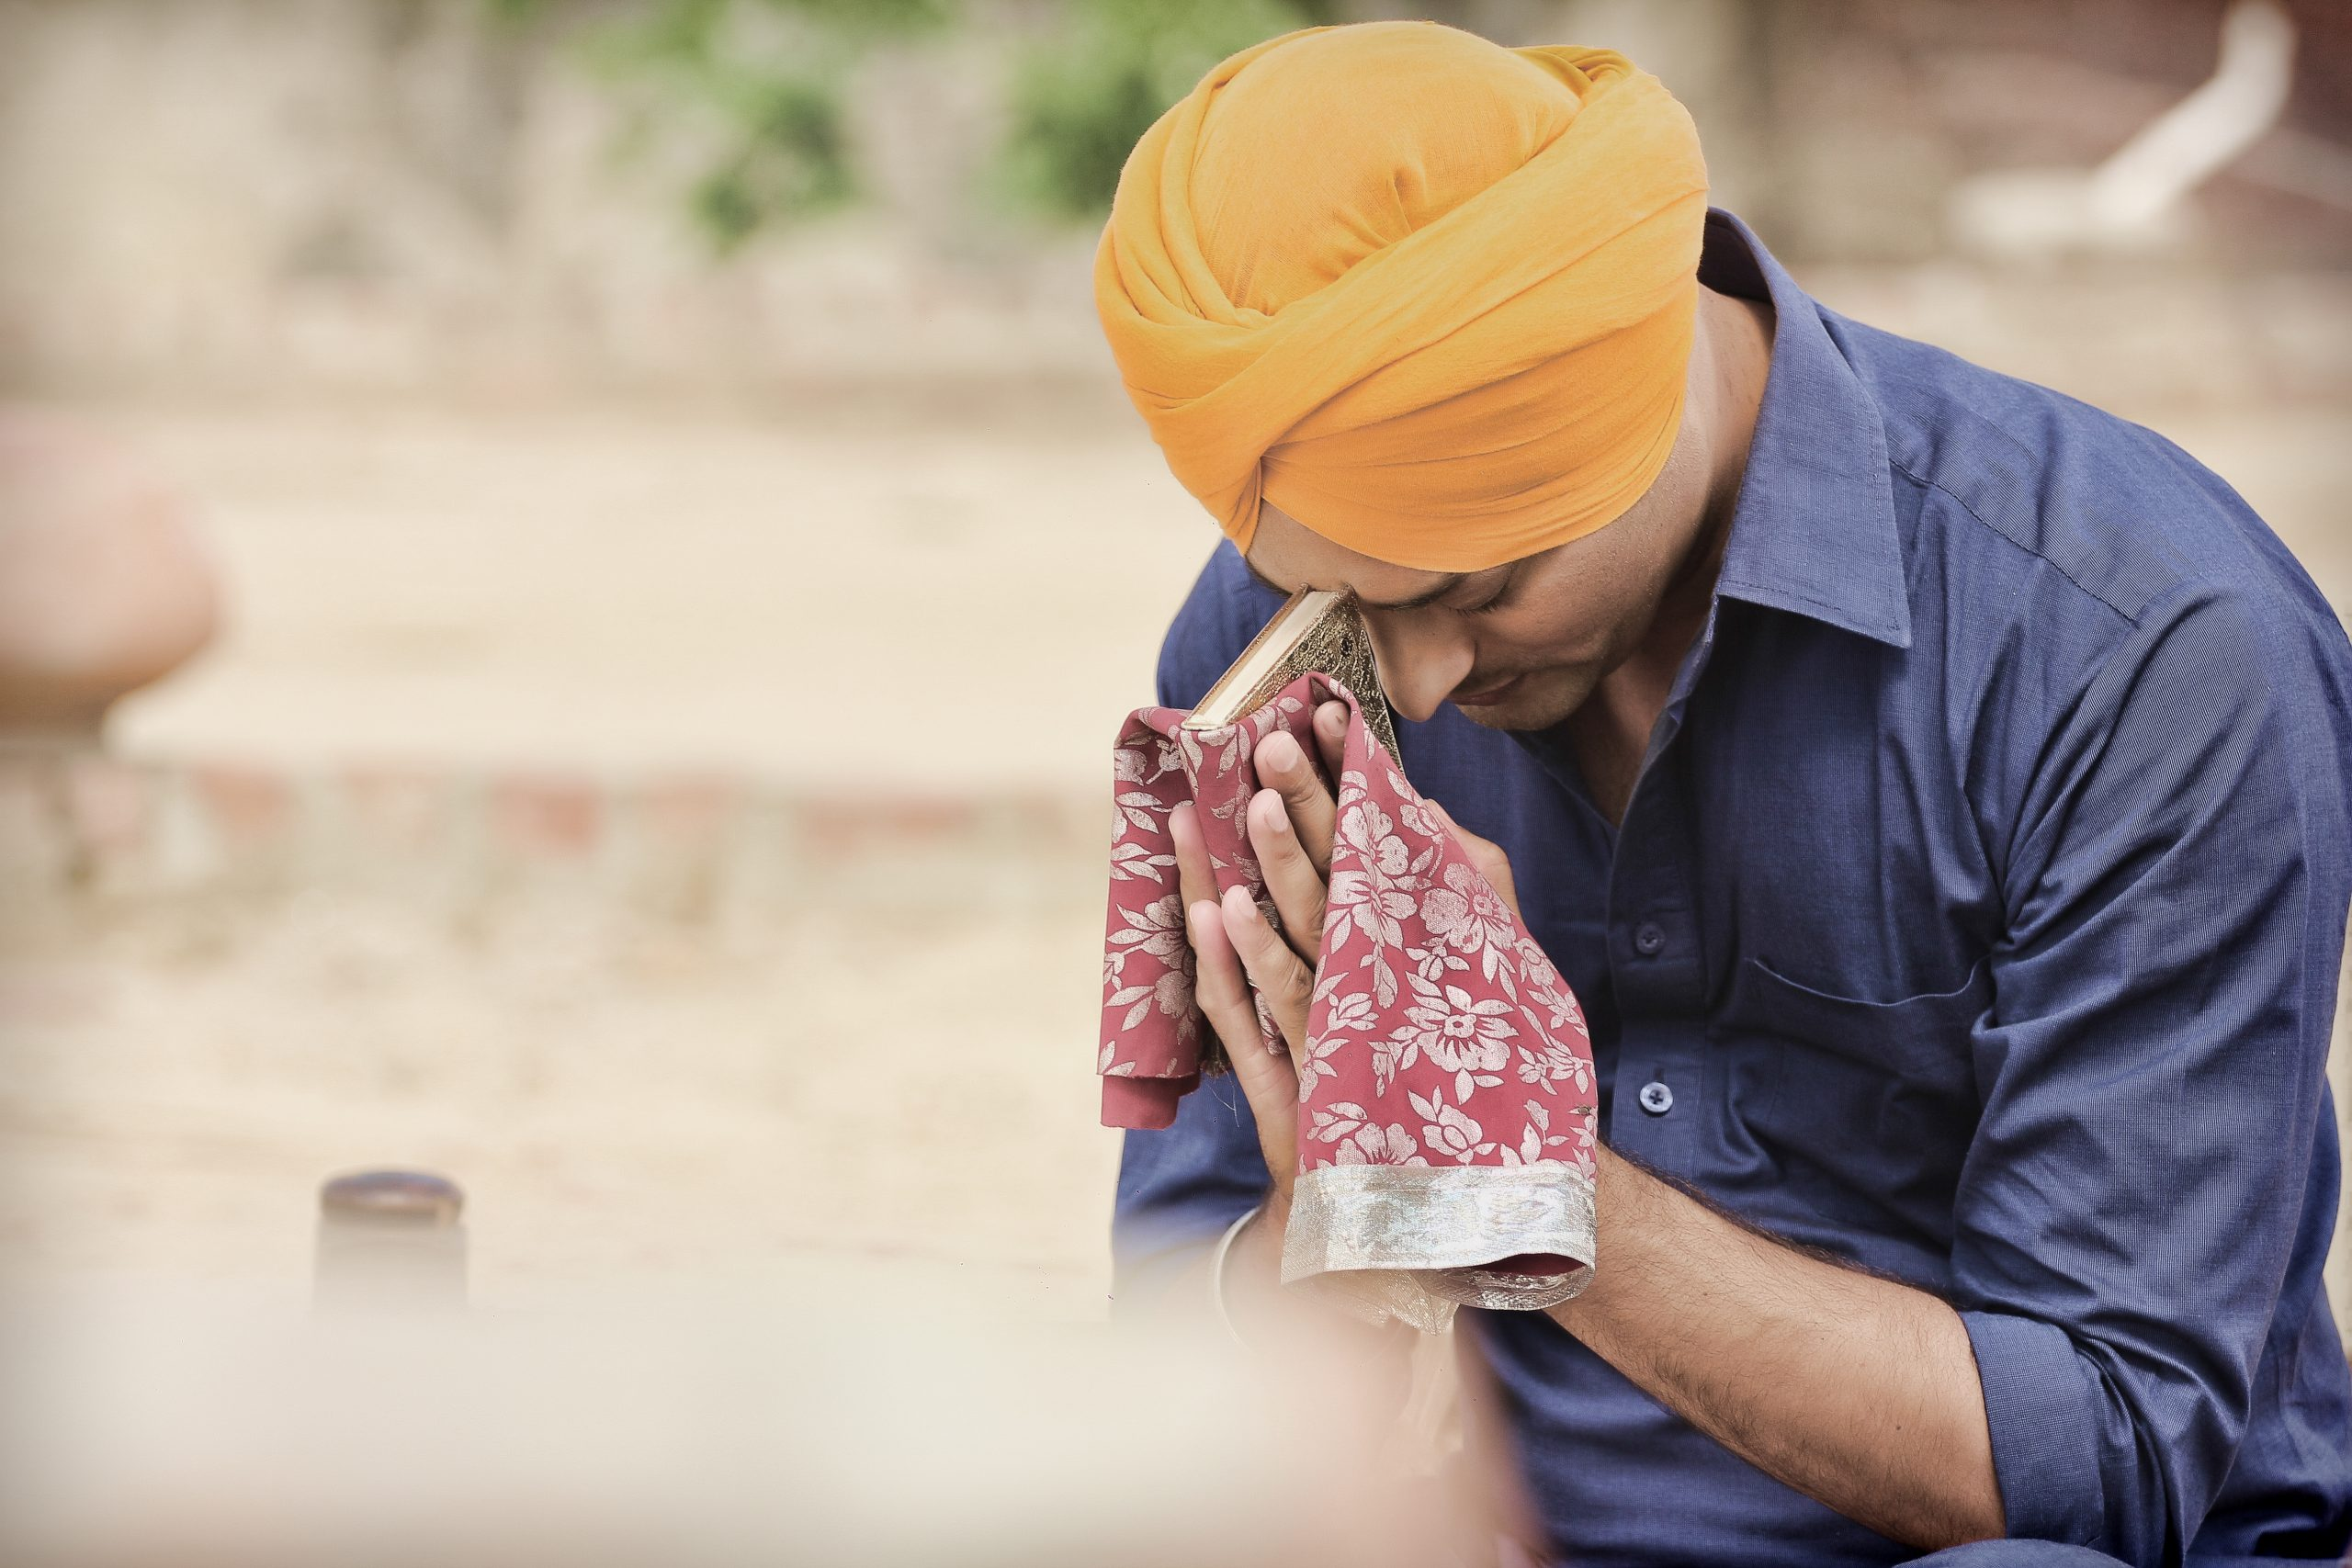 A Sikh boy praying